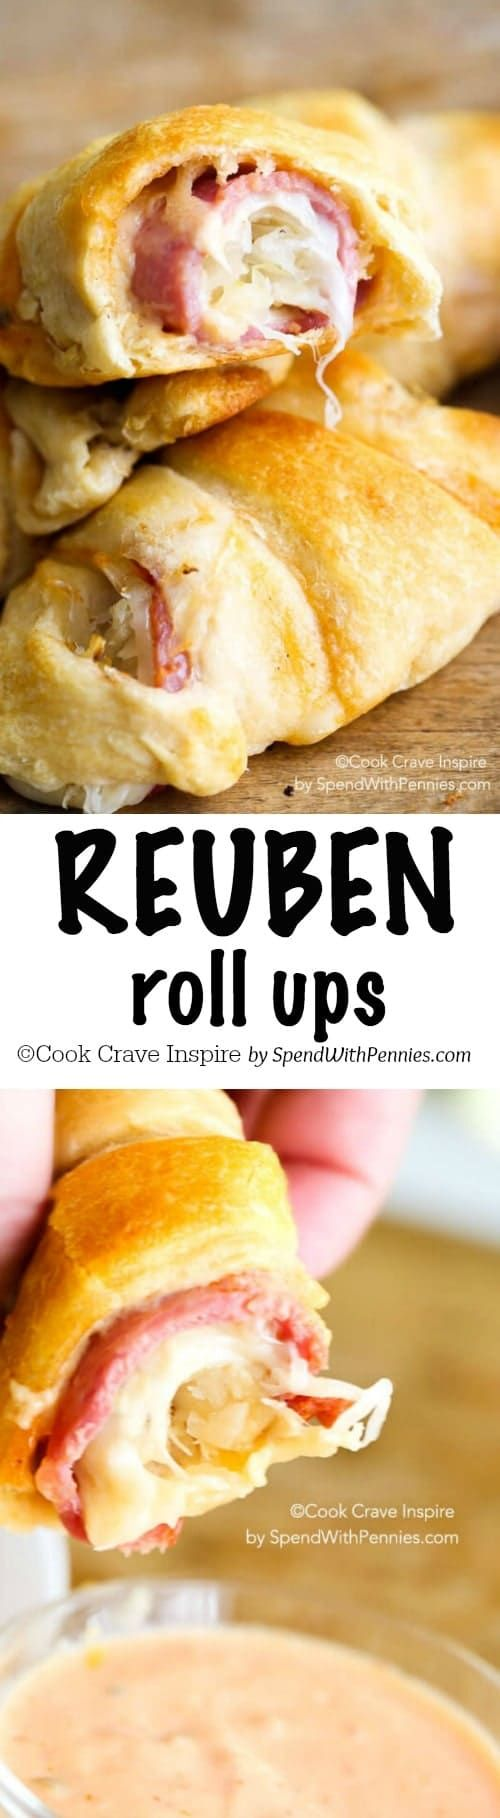 Reuben Roll Ups! All of the deliciousness of a reuben sandwich in an easy to make roll up! Perfect for snacks, appetizers or lunch!